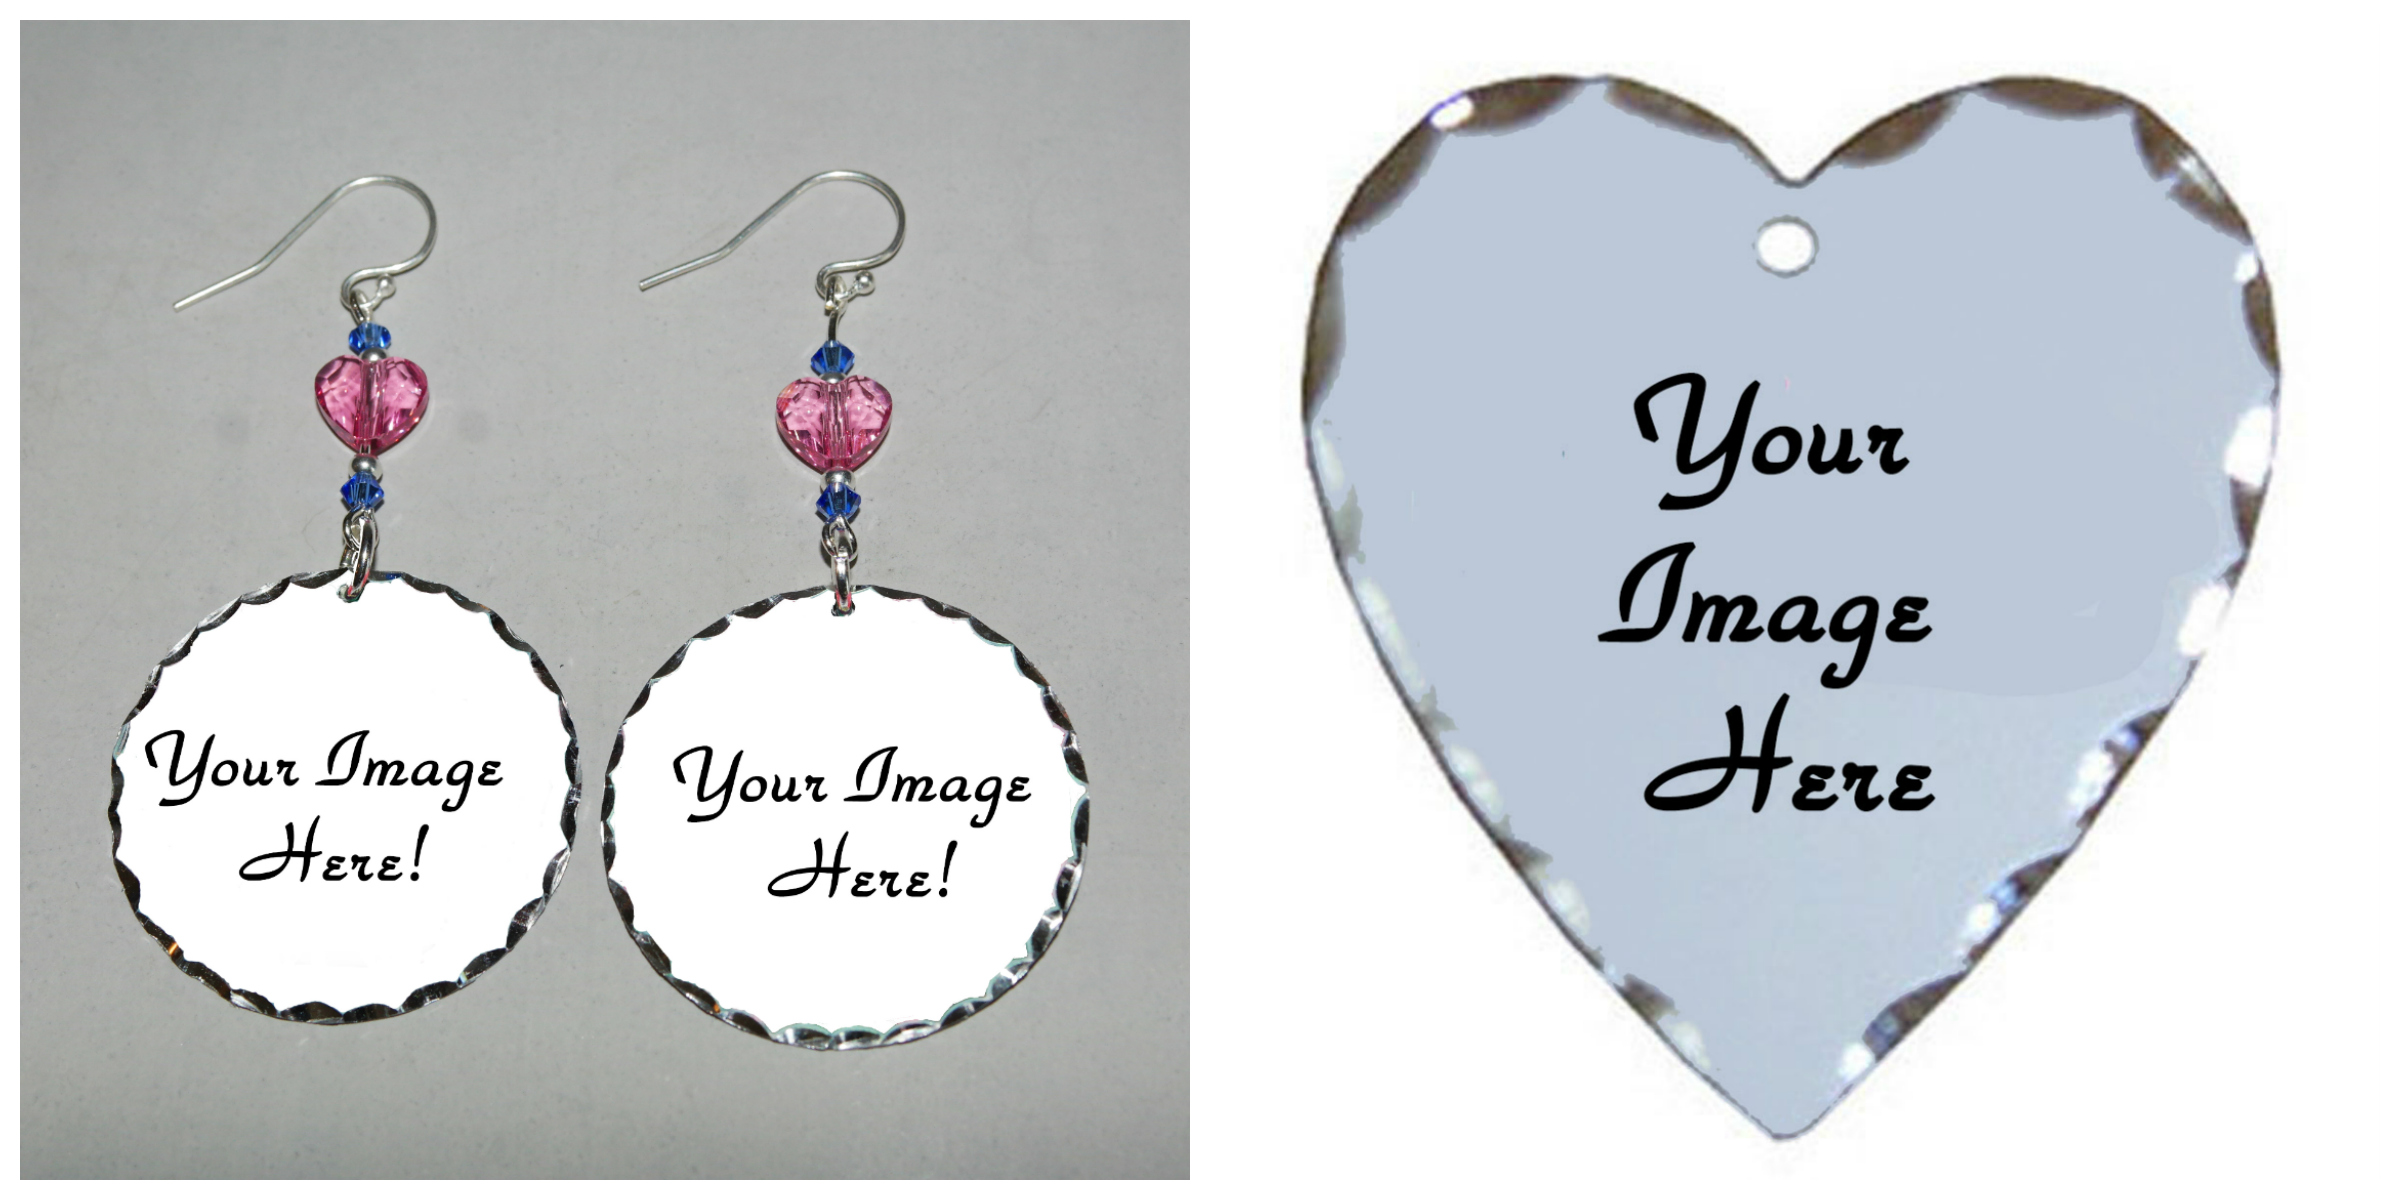 A Bespoke Earrings Personalized Customized Keepsake Jewelry